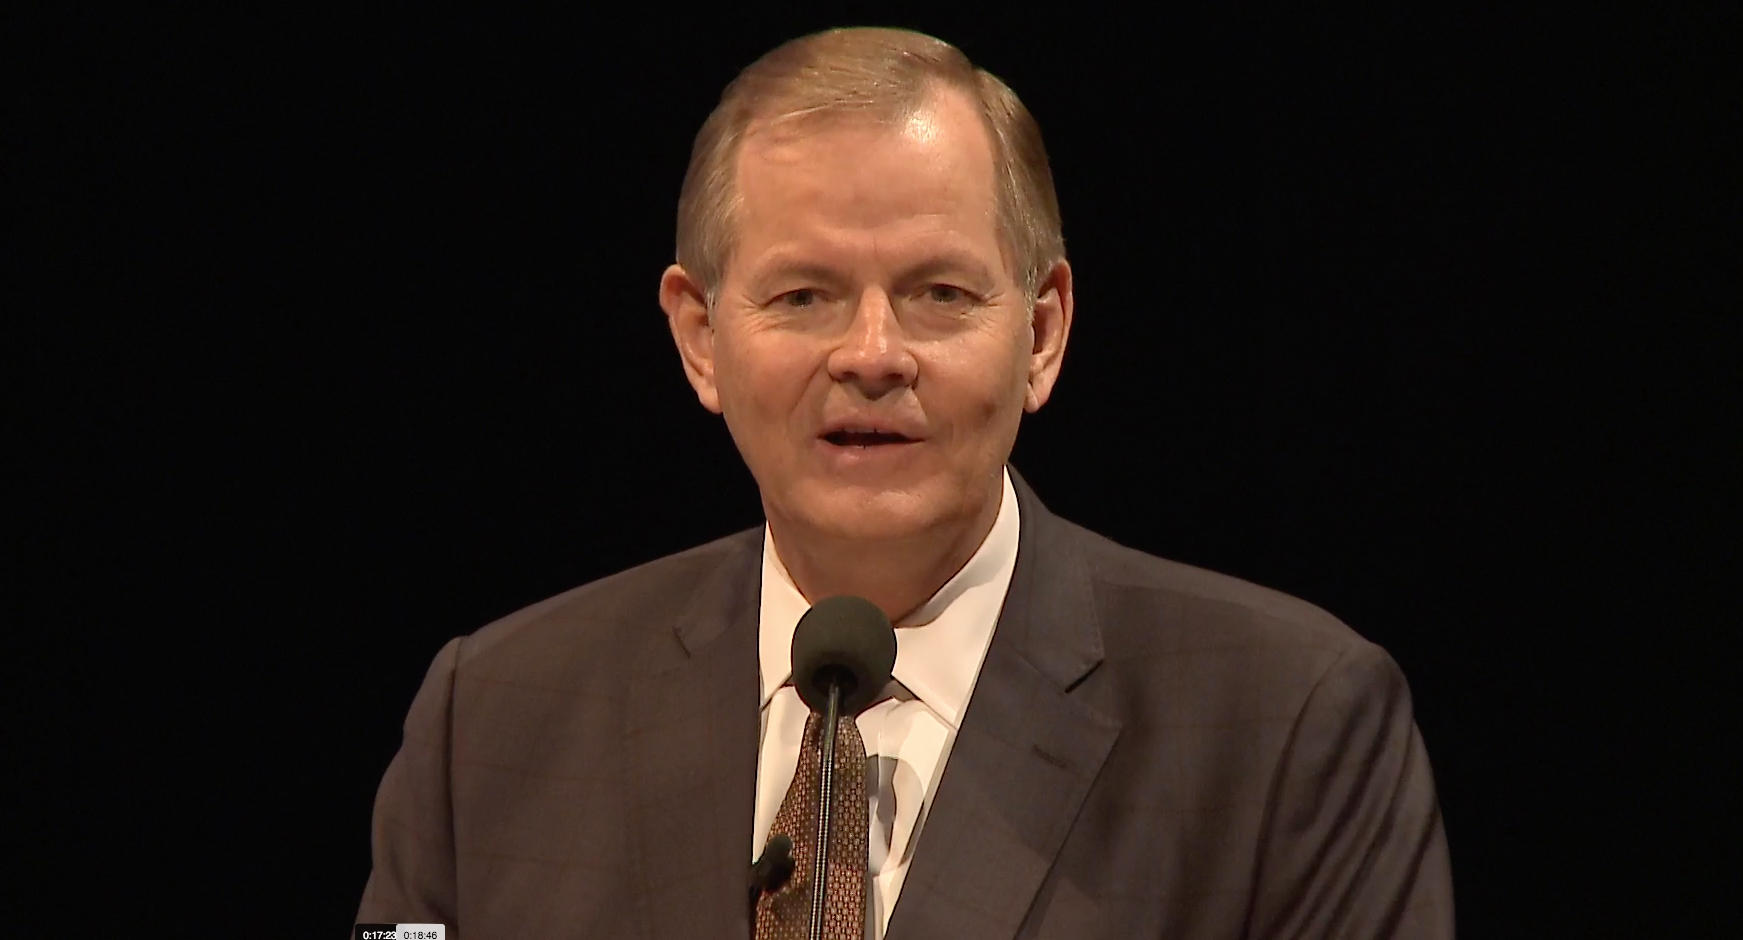 Elder Gary E. Stevenson of the Quorum of the Twelve Apostles offers remarks during an instruction meeting to ward and stake leaders and members with temple and family history work callings and responsibilities. The image is from a screenshot from the Feb. 28 broadcast.